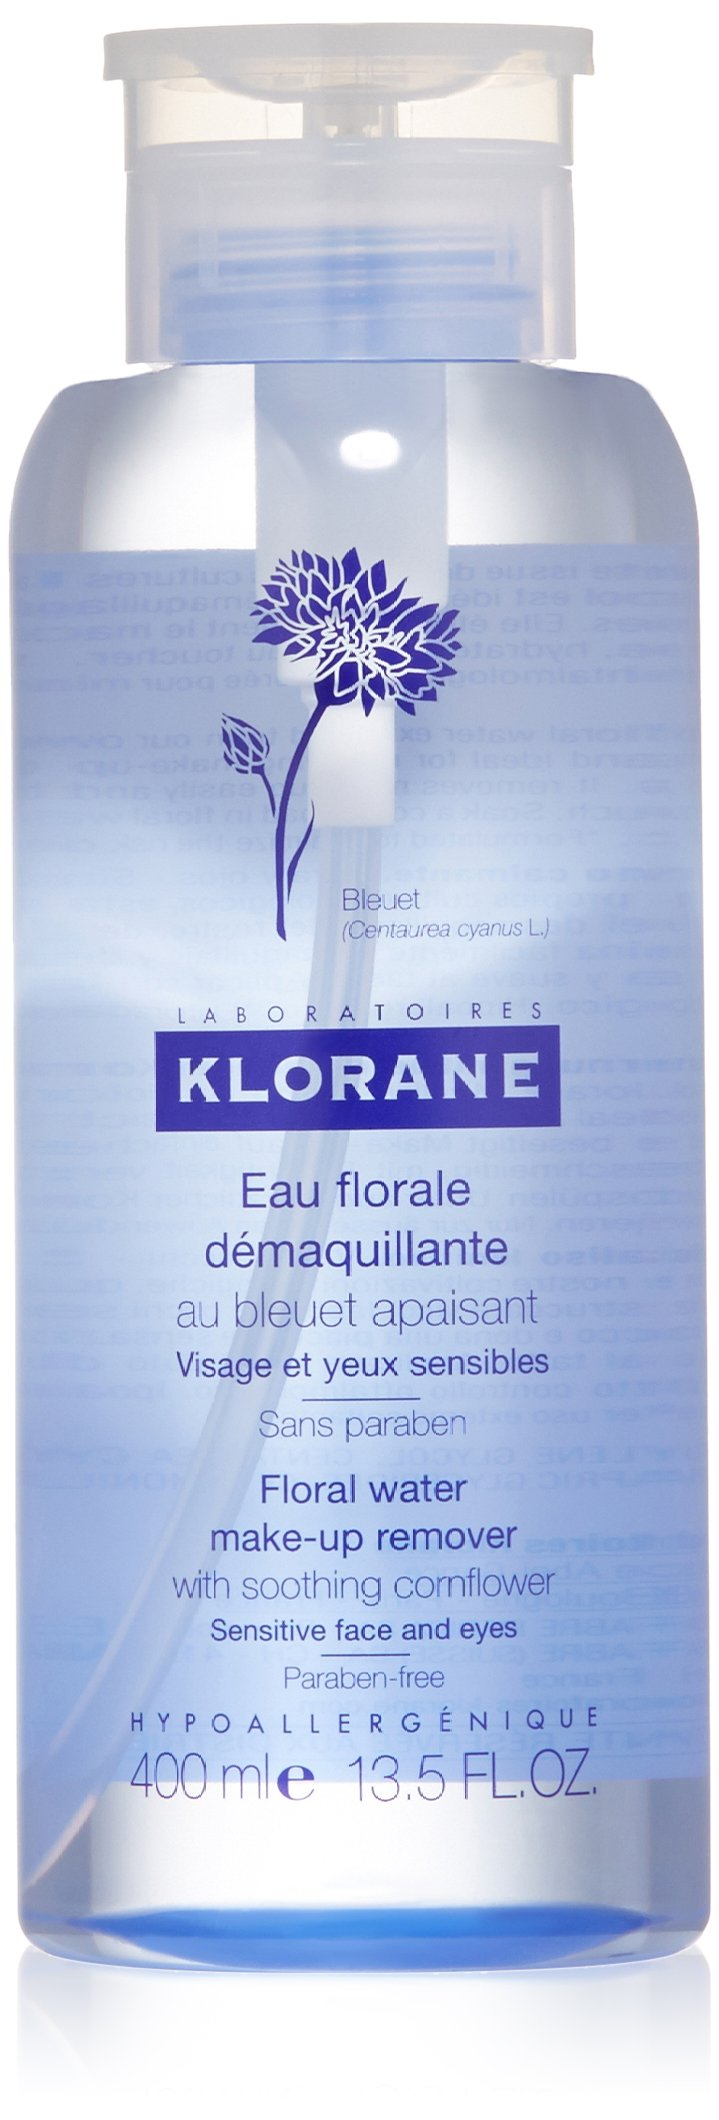 Klorane Floral Water Make-Up Remover With Soothing Cornflower, 13.5 fl. oz.